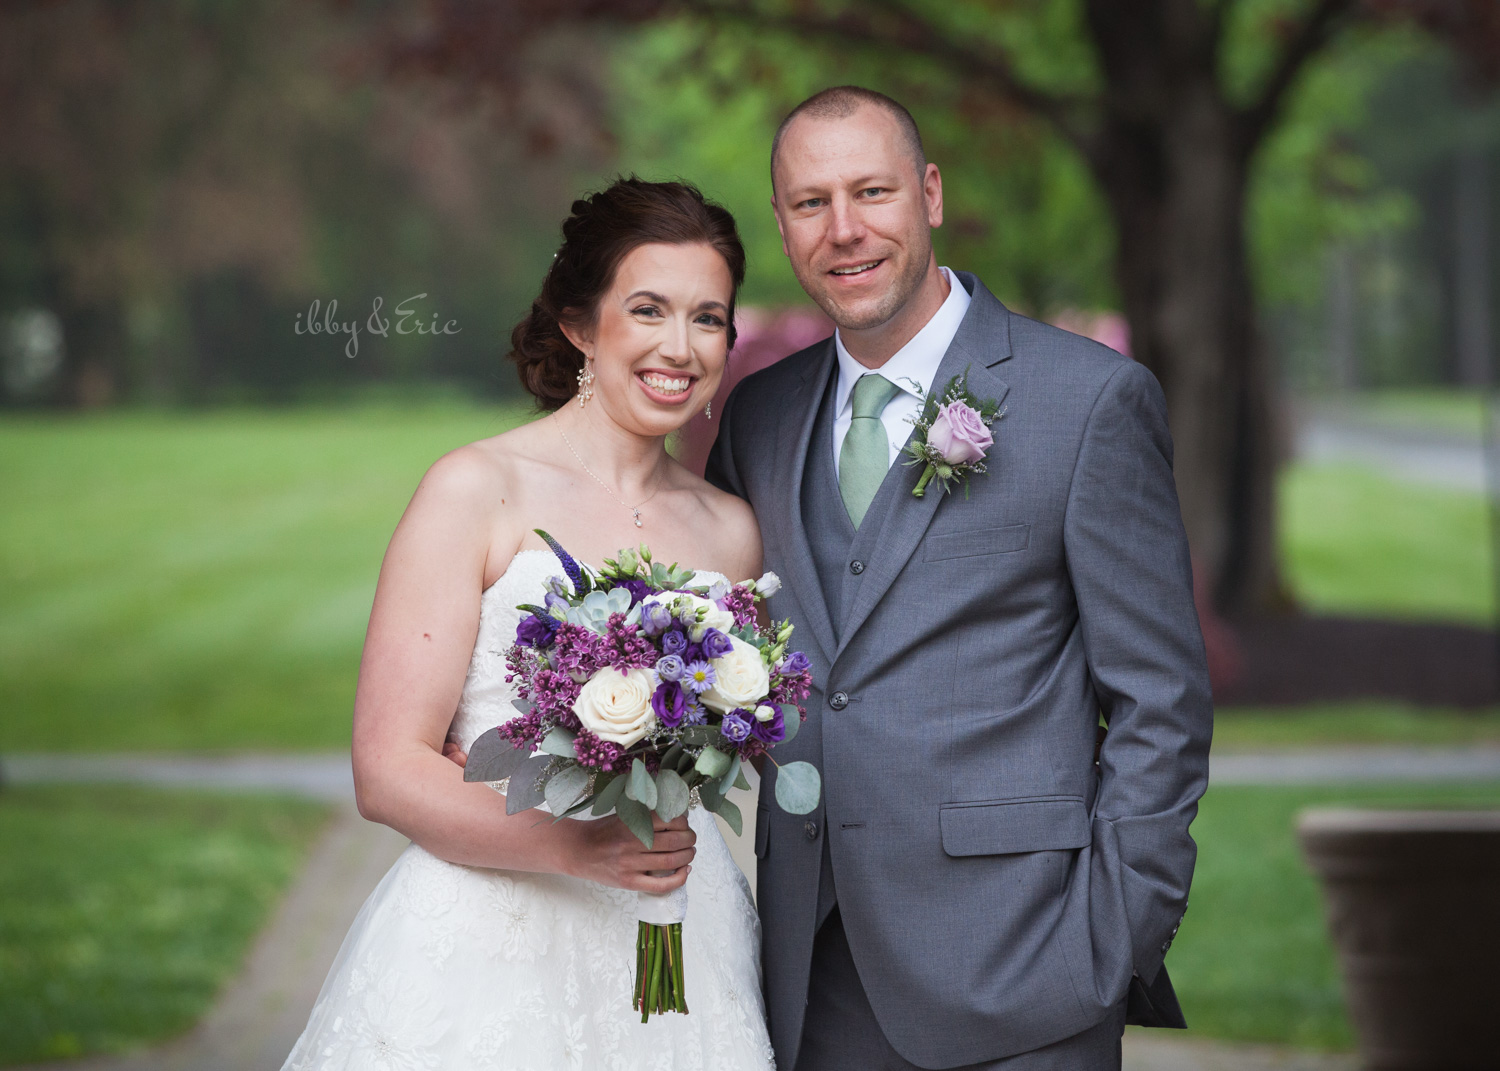 Bride holding a purple bouquet and groom smile in the garden at Stanley Park.